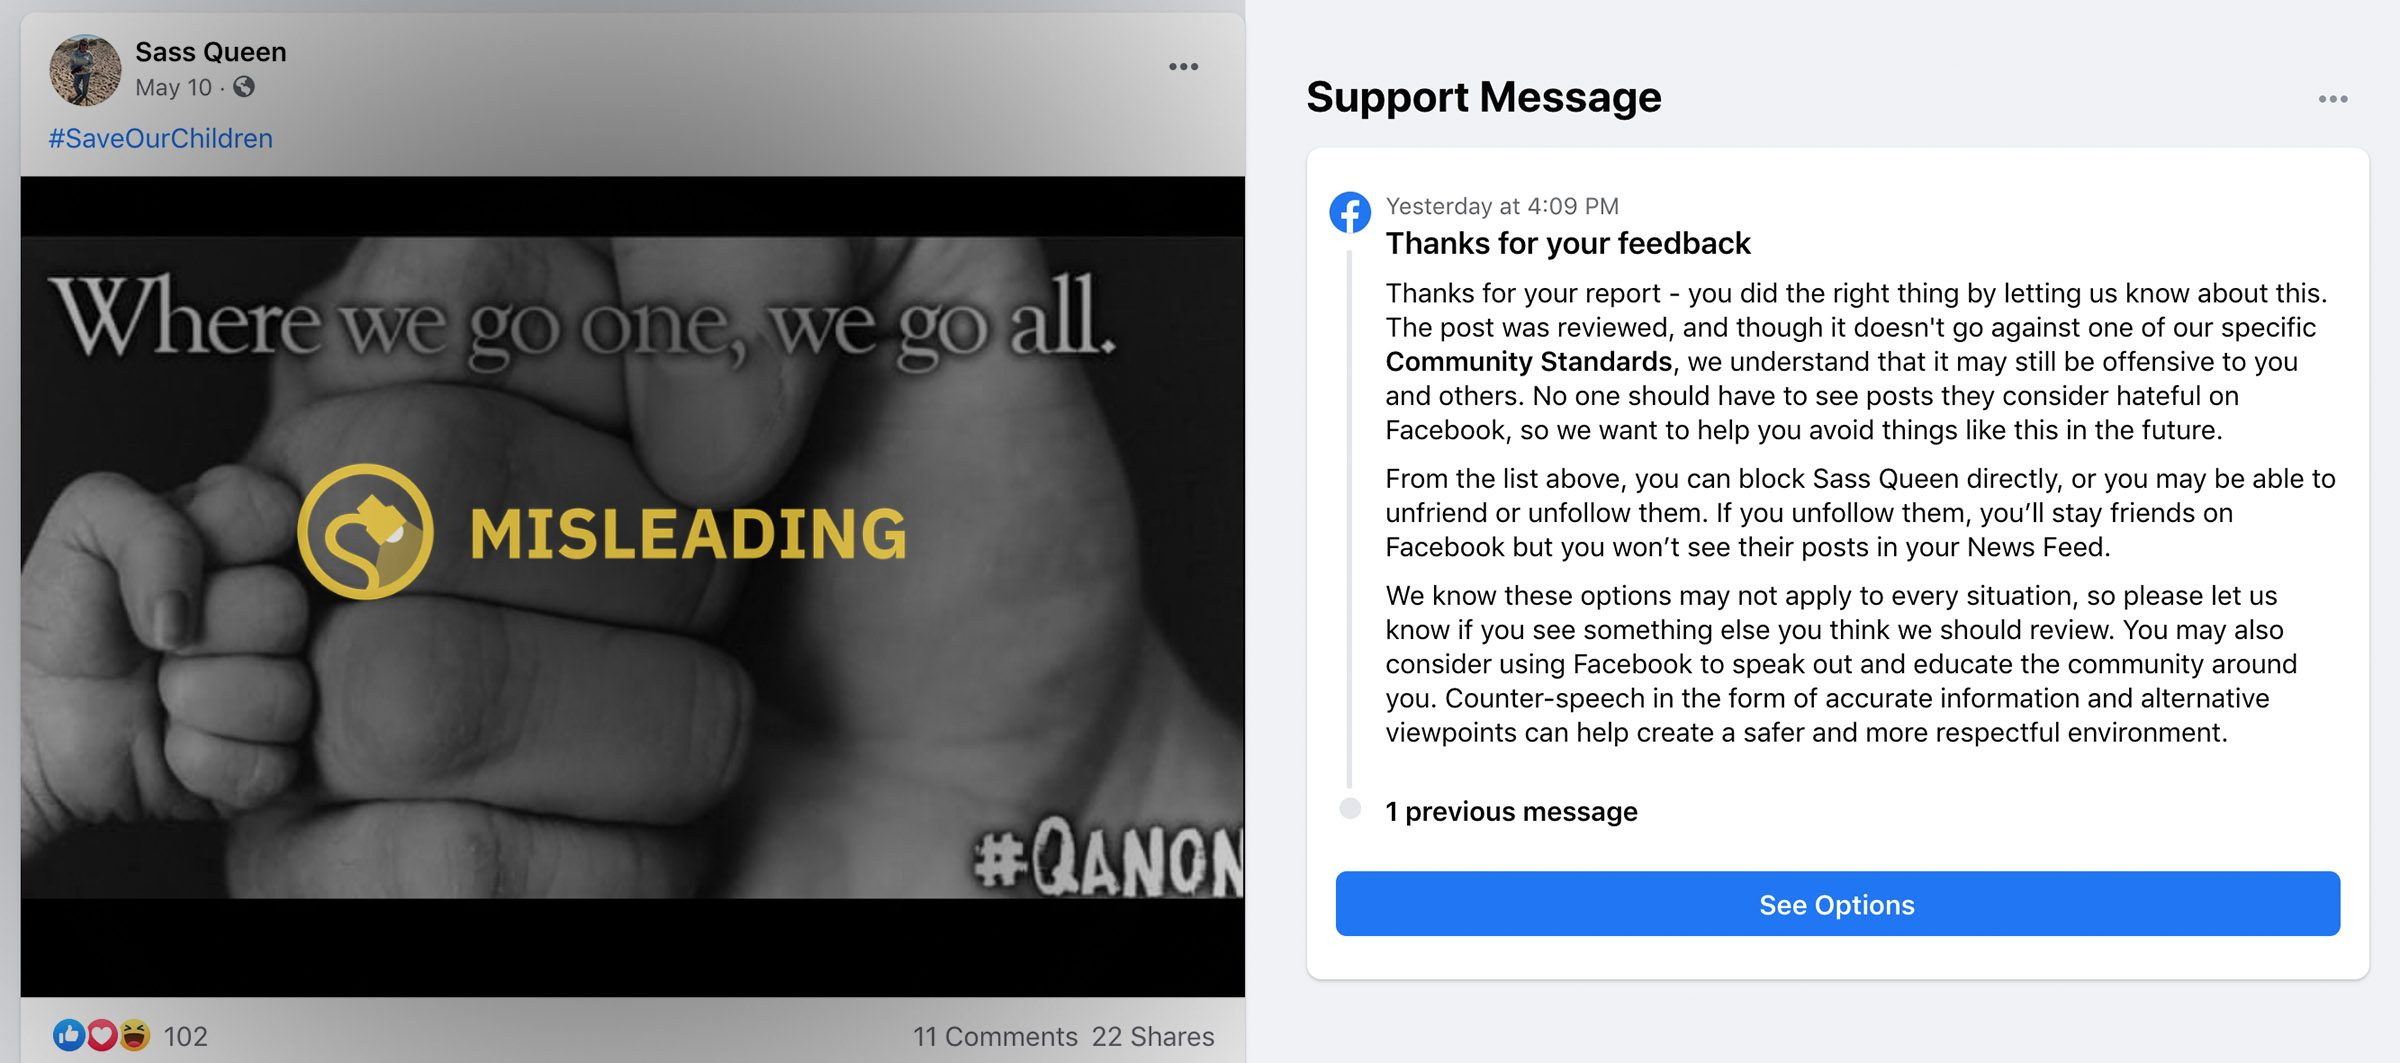 QAnon conspiracy theory content is still thriving on Facebook despite a supposed ban a year ago.